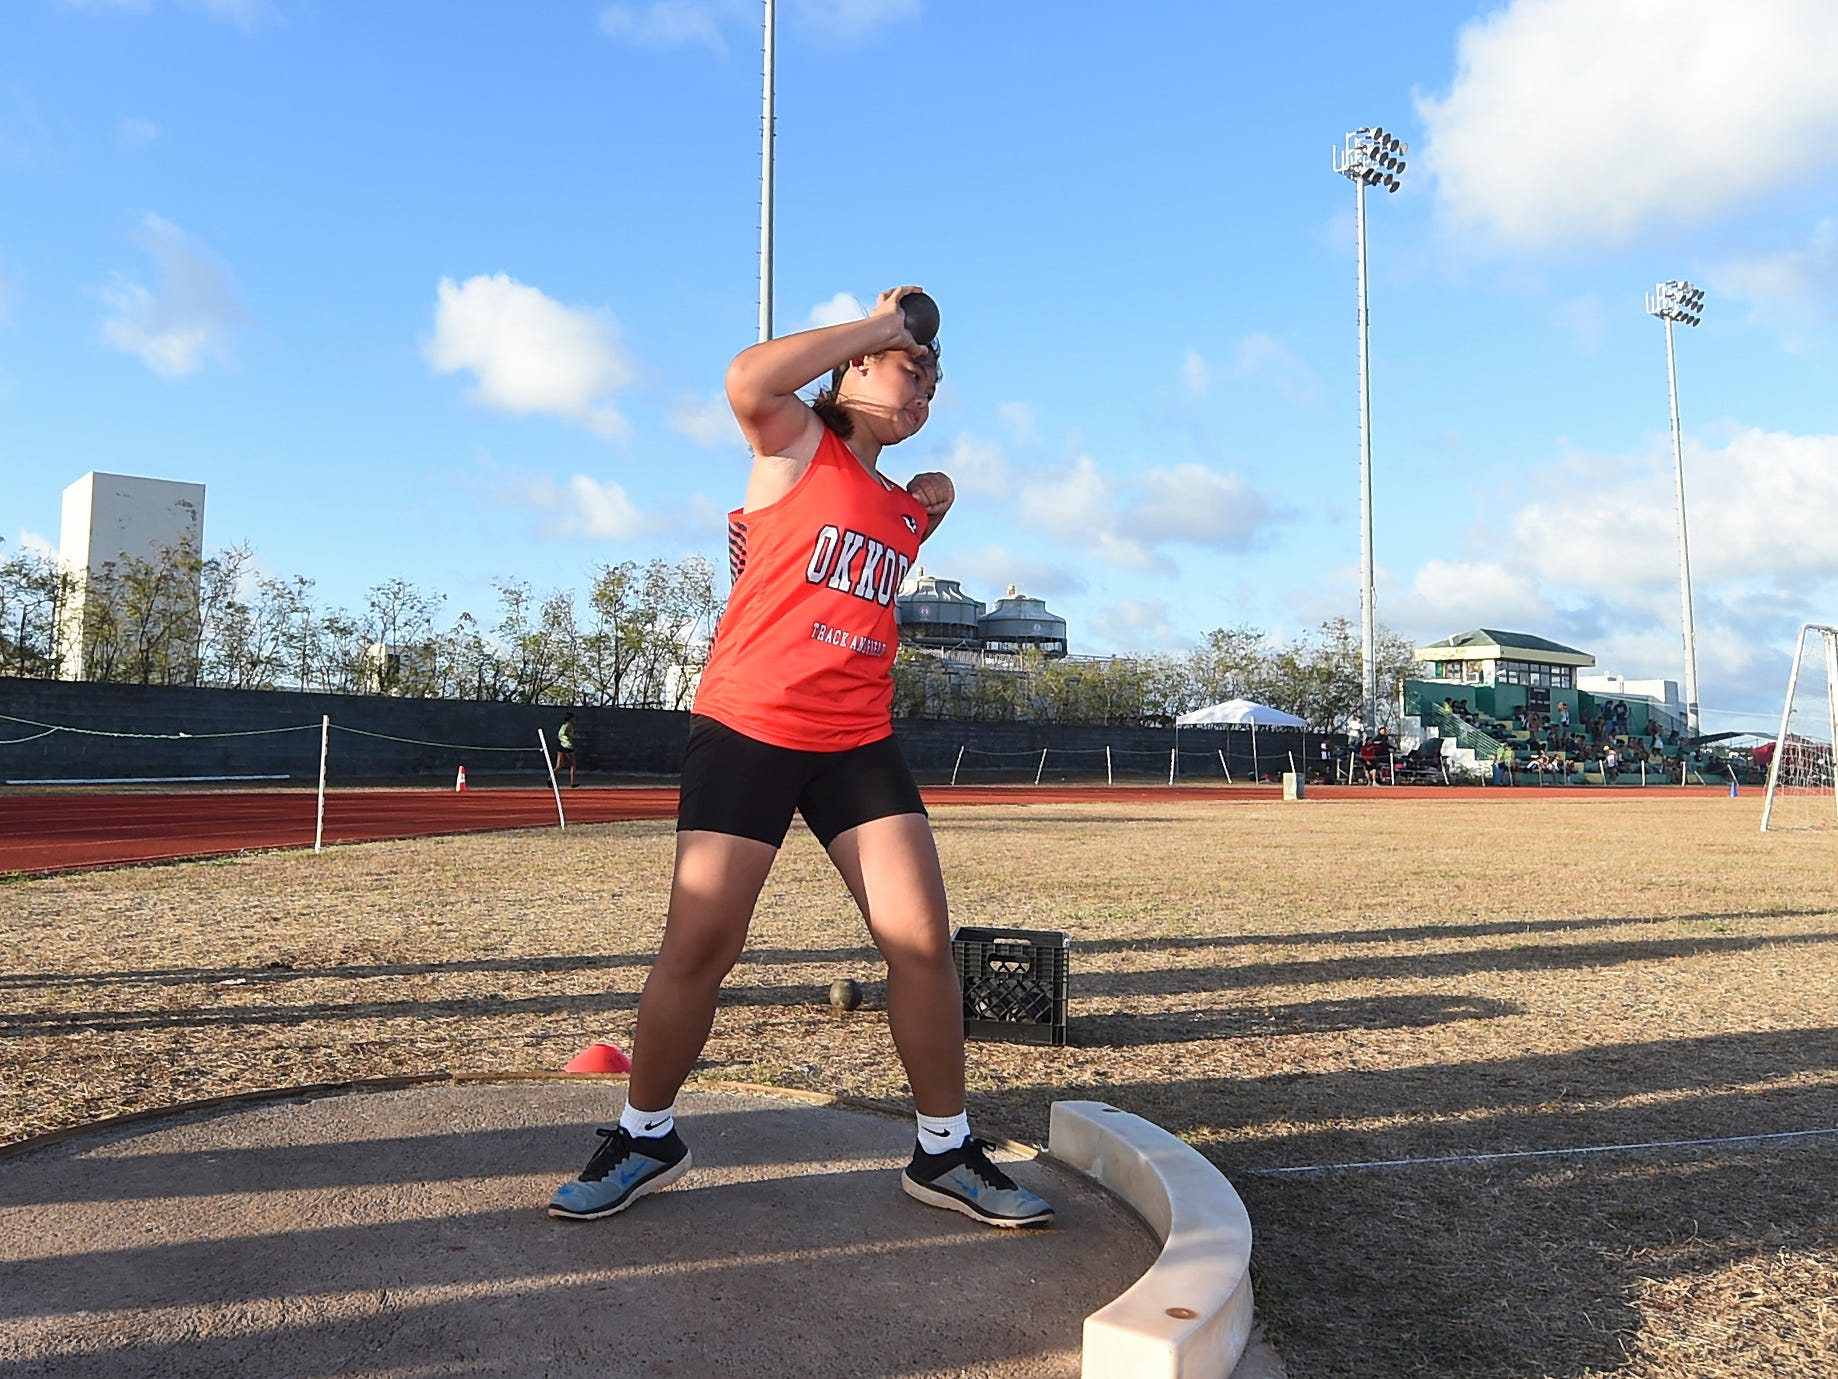 Okkodo High athlete Althea Ocampo, 15, prepares to make a release in the Shot Put 4kg Varisty event during a IIAAG Track and Field meet at John F. Kennedy Ramsey Field in Tamuning on May 10, 2019.